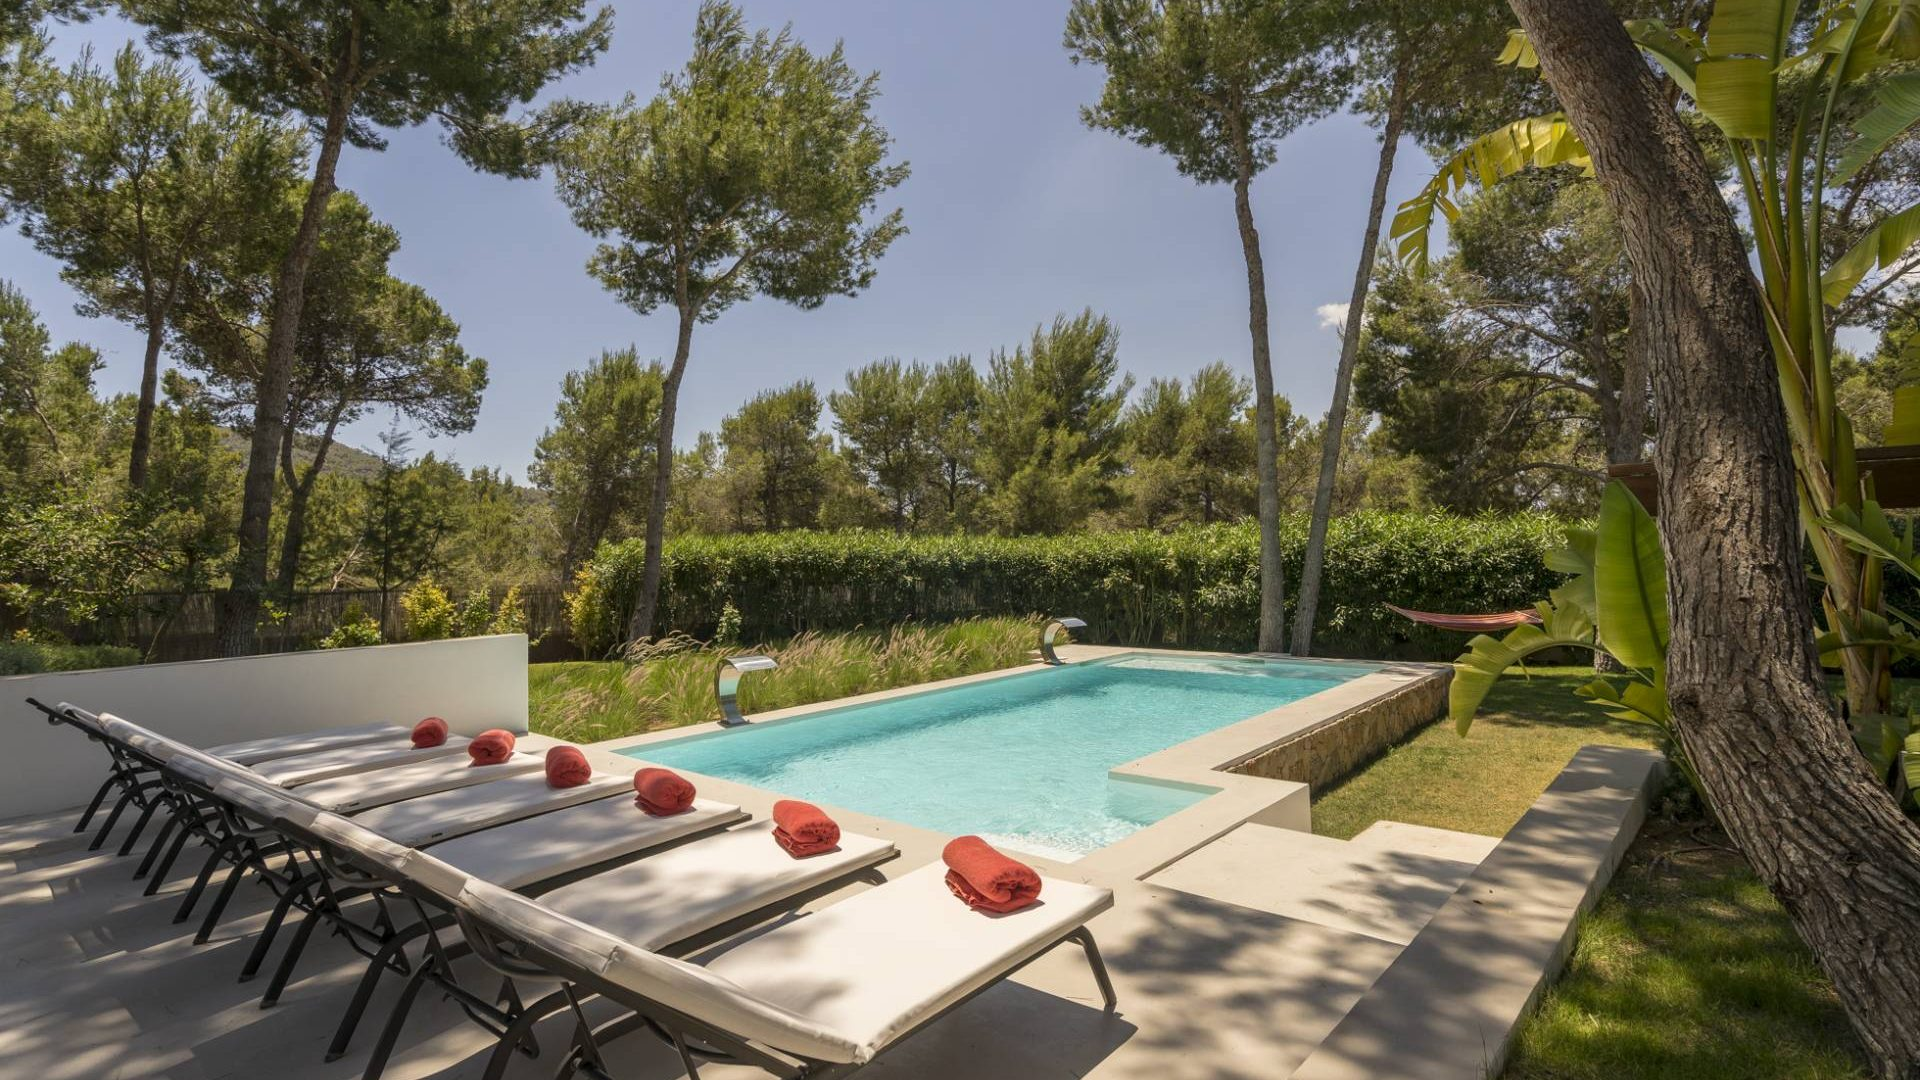 Ibiza holiday villa Andrea Can Furnet 4 bedrooms